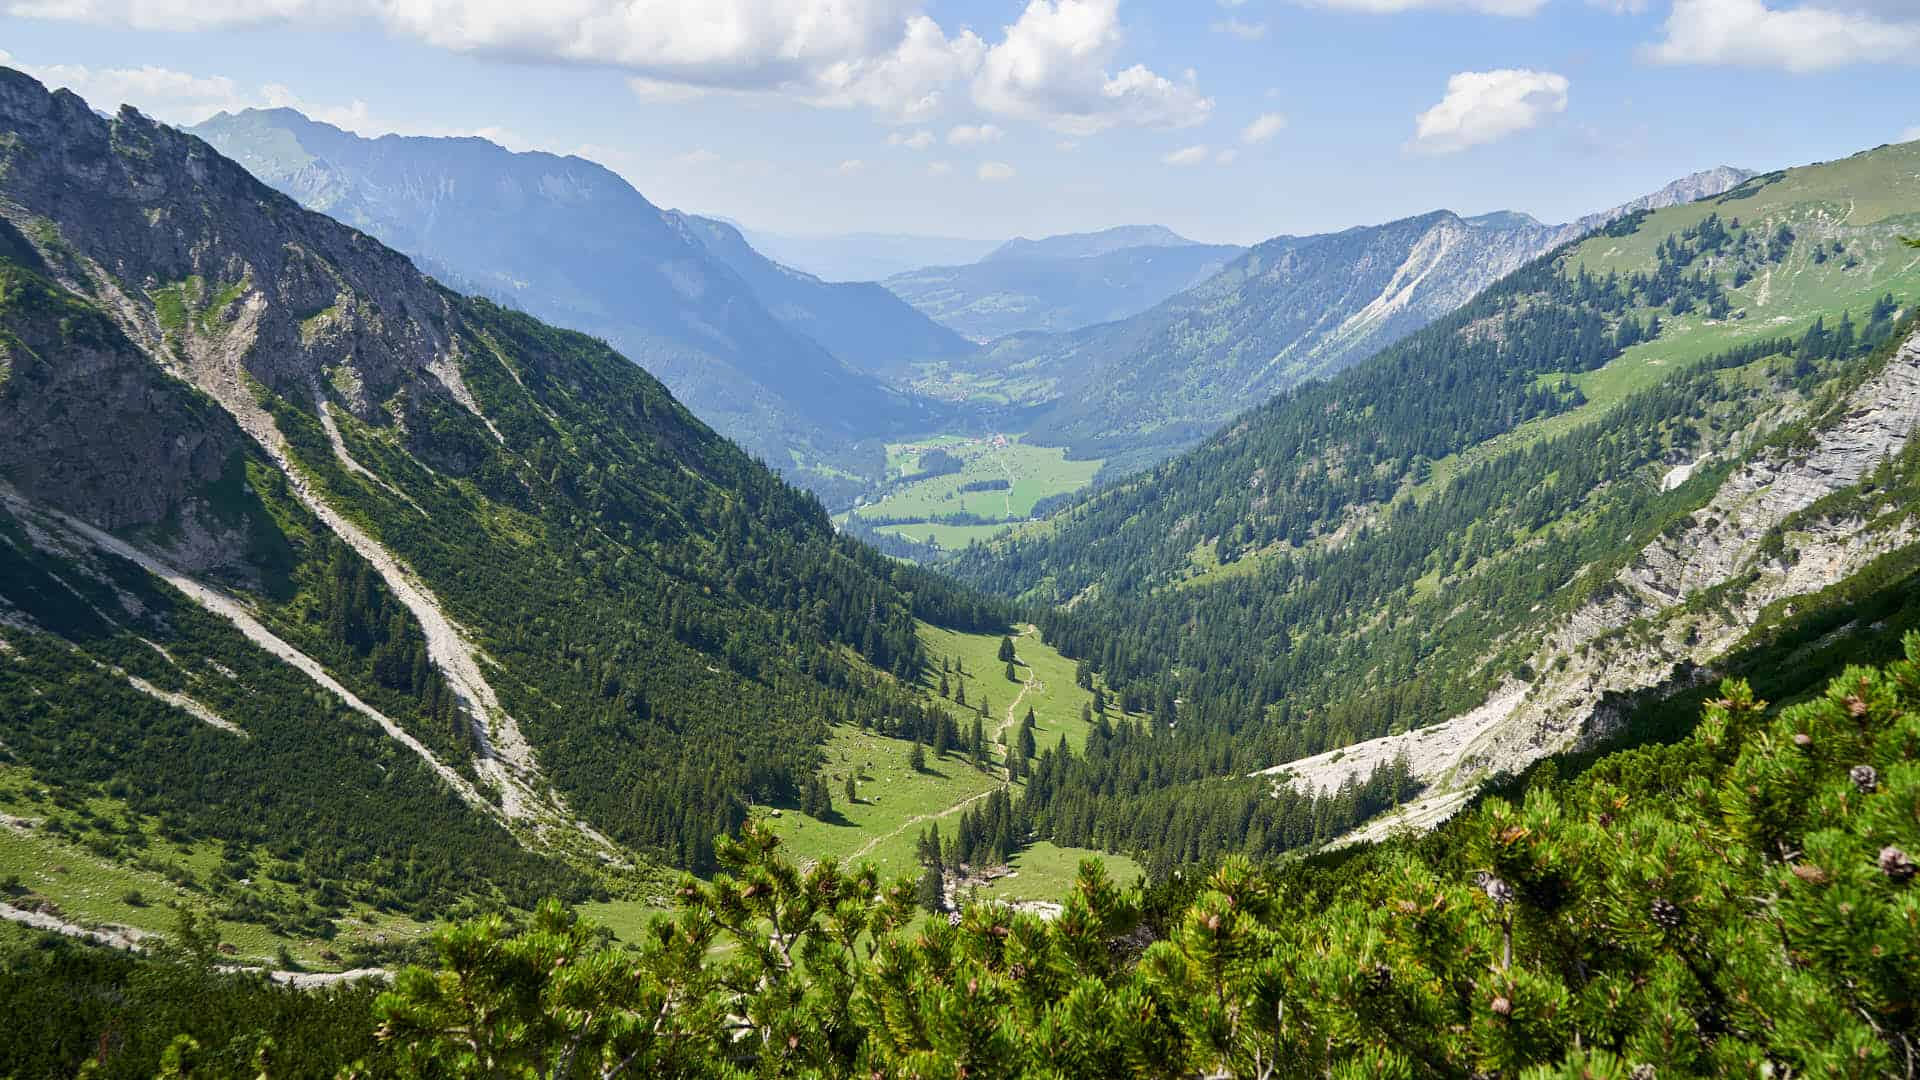 View of the valley near lake Schrecksee